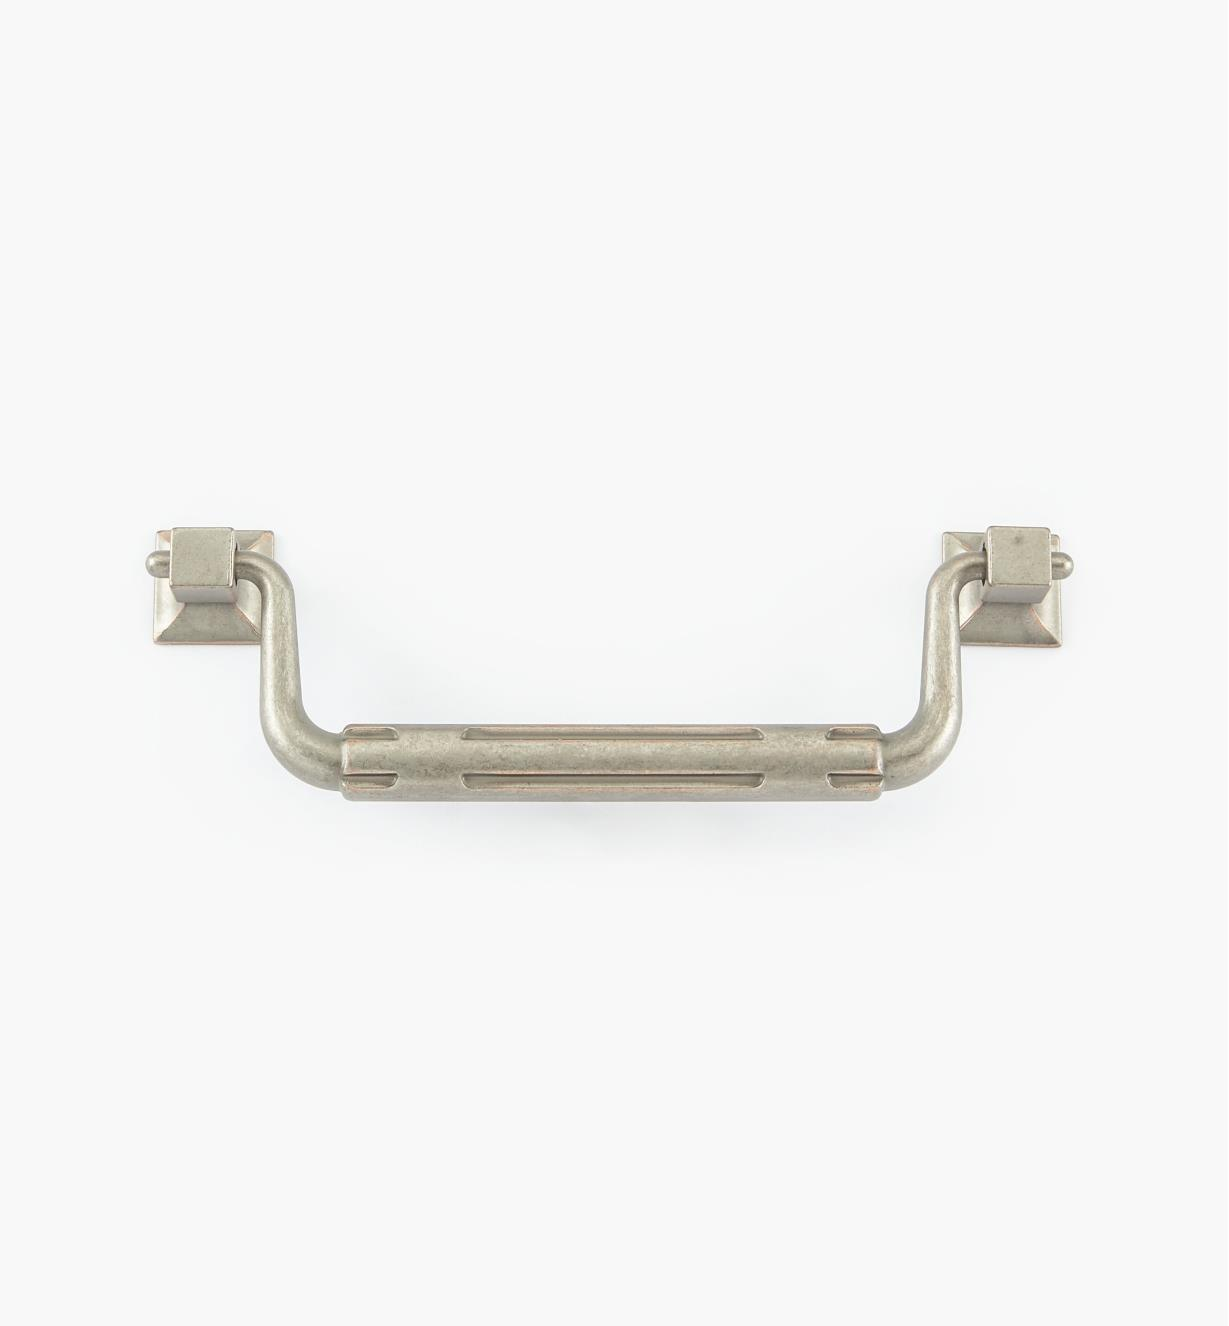 02W1963 - 128mm Weathered Nickel-Copper Stop Handle